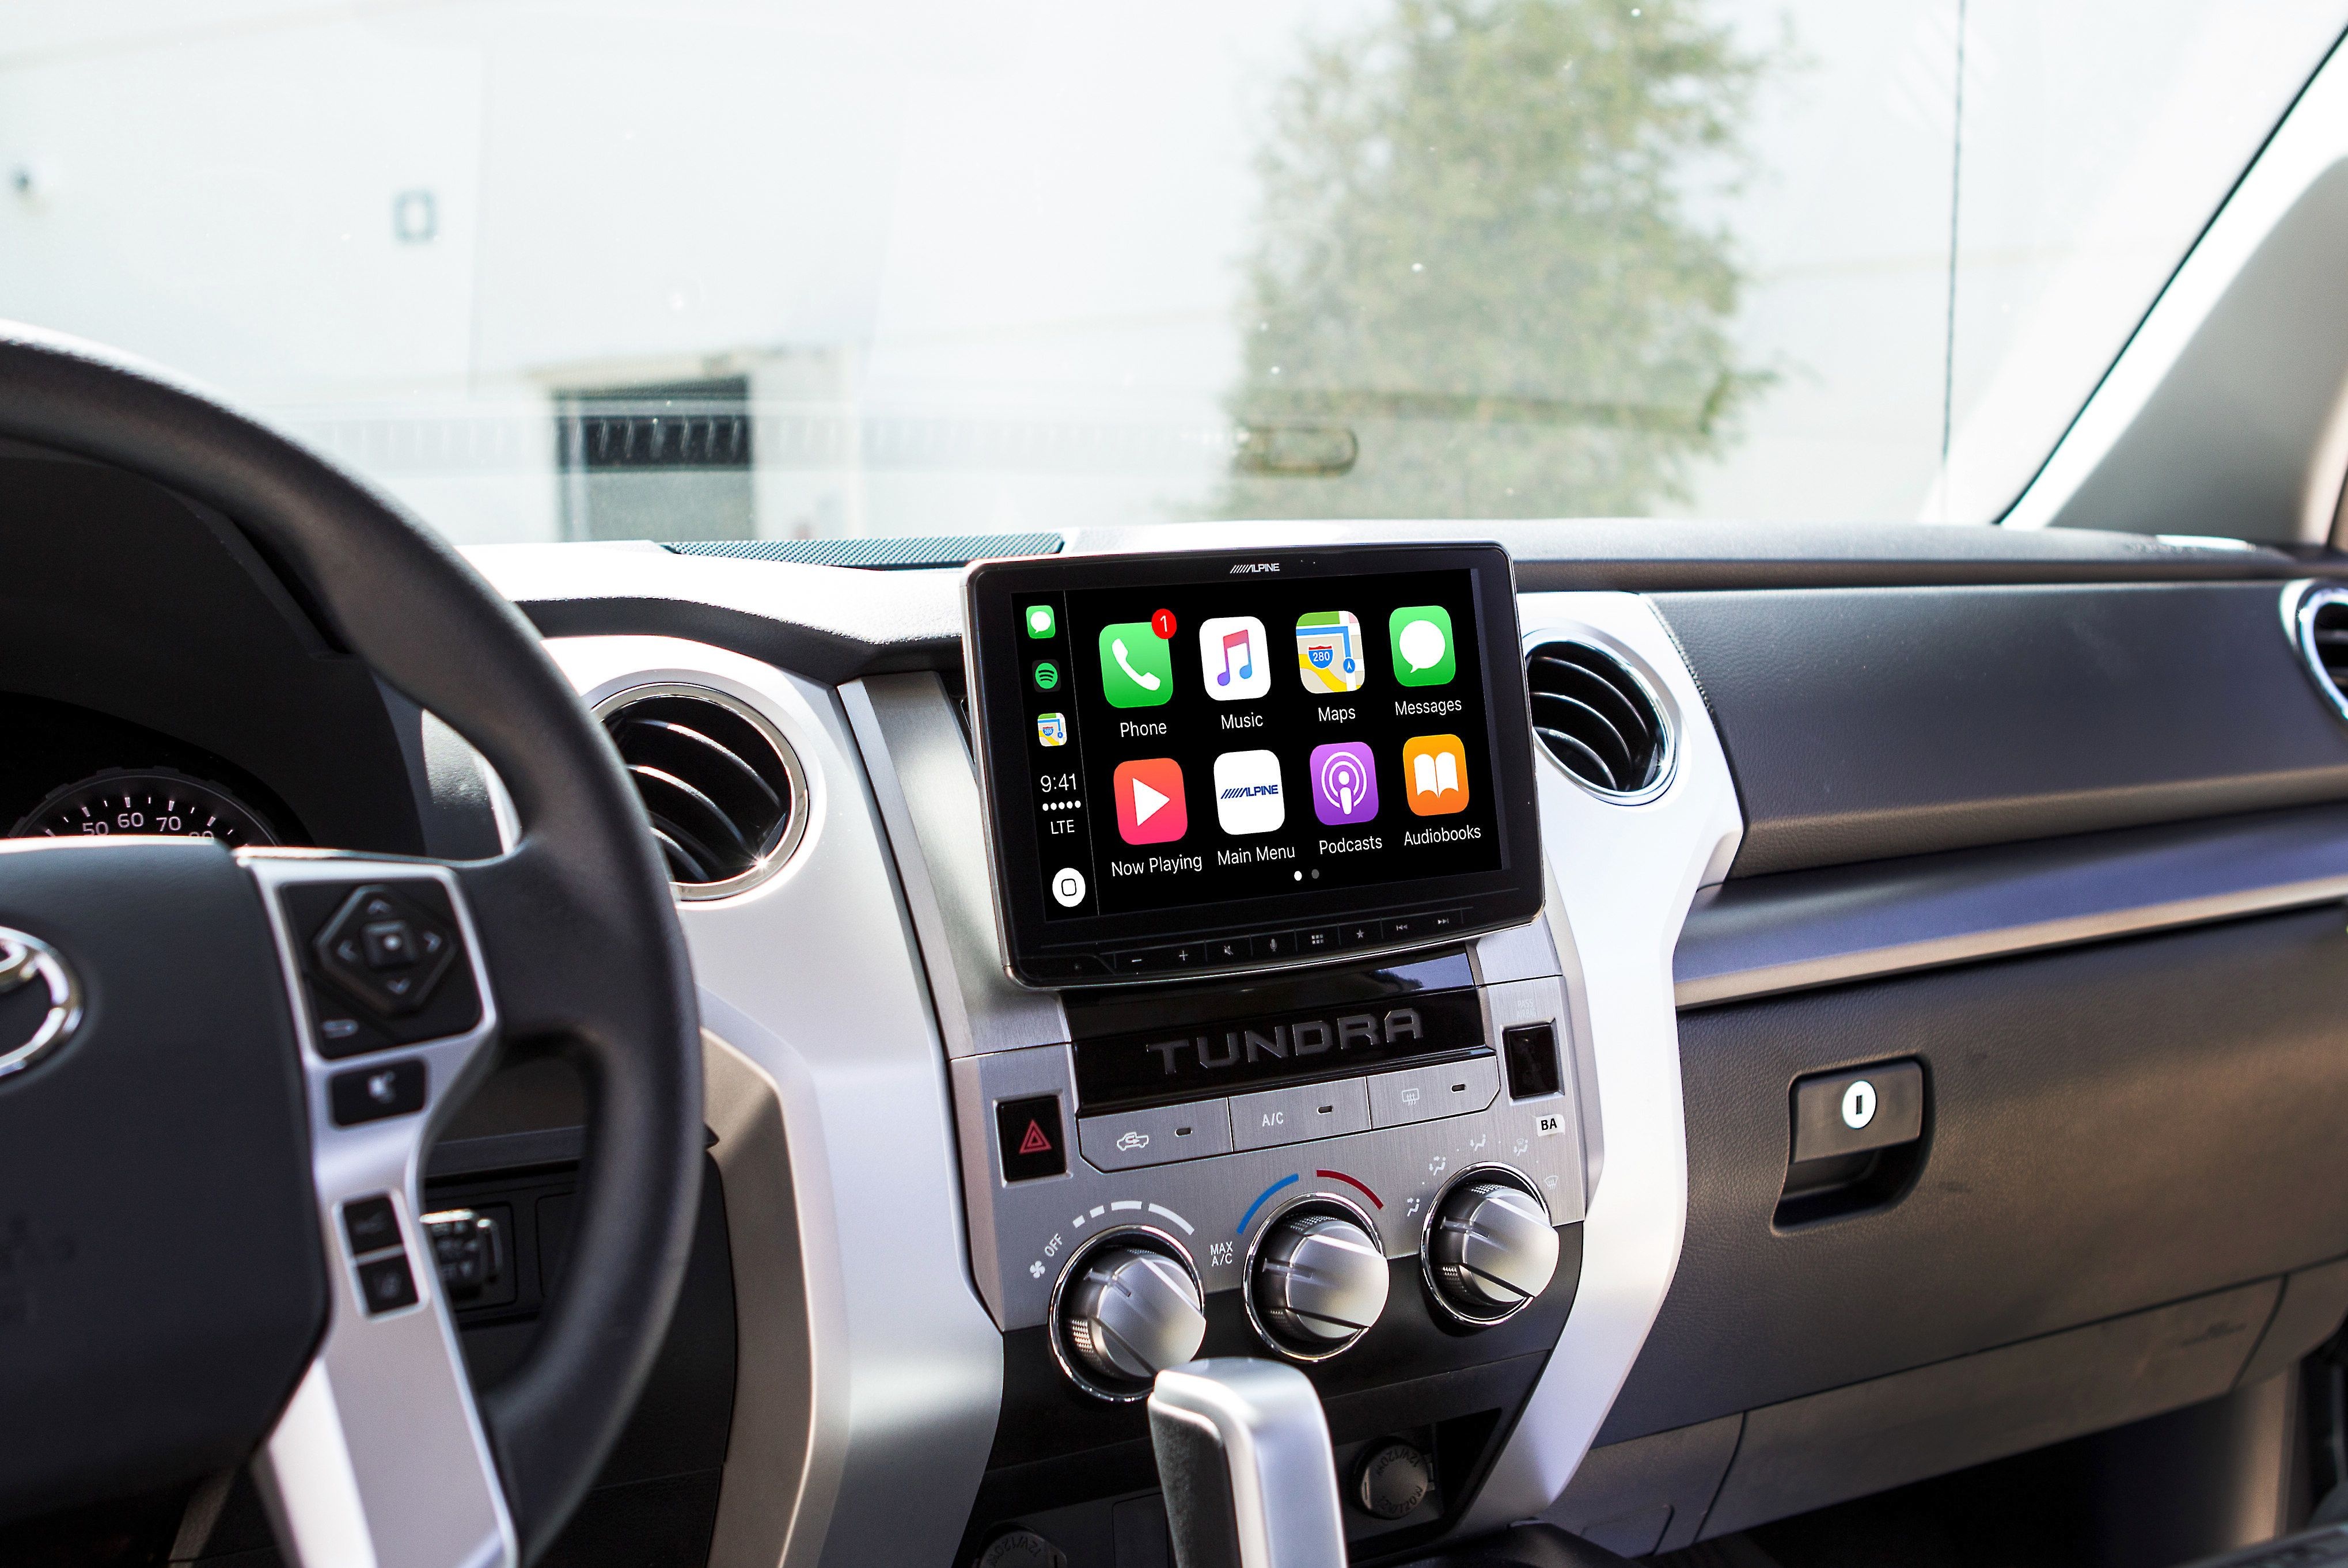 Alpine Halo9 Ilx F309tnd Custom Fit Digital Multimedia Receiver With 9 Touchscreen For 2014 19 Toyota Tundras Does Not Play Cds At Crutchfield Toyota Tundra Apple Car Play Toyota Tundra Accessories